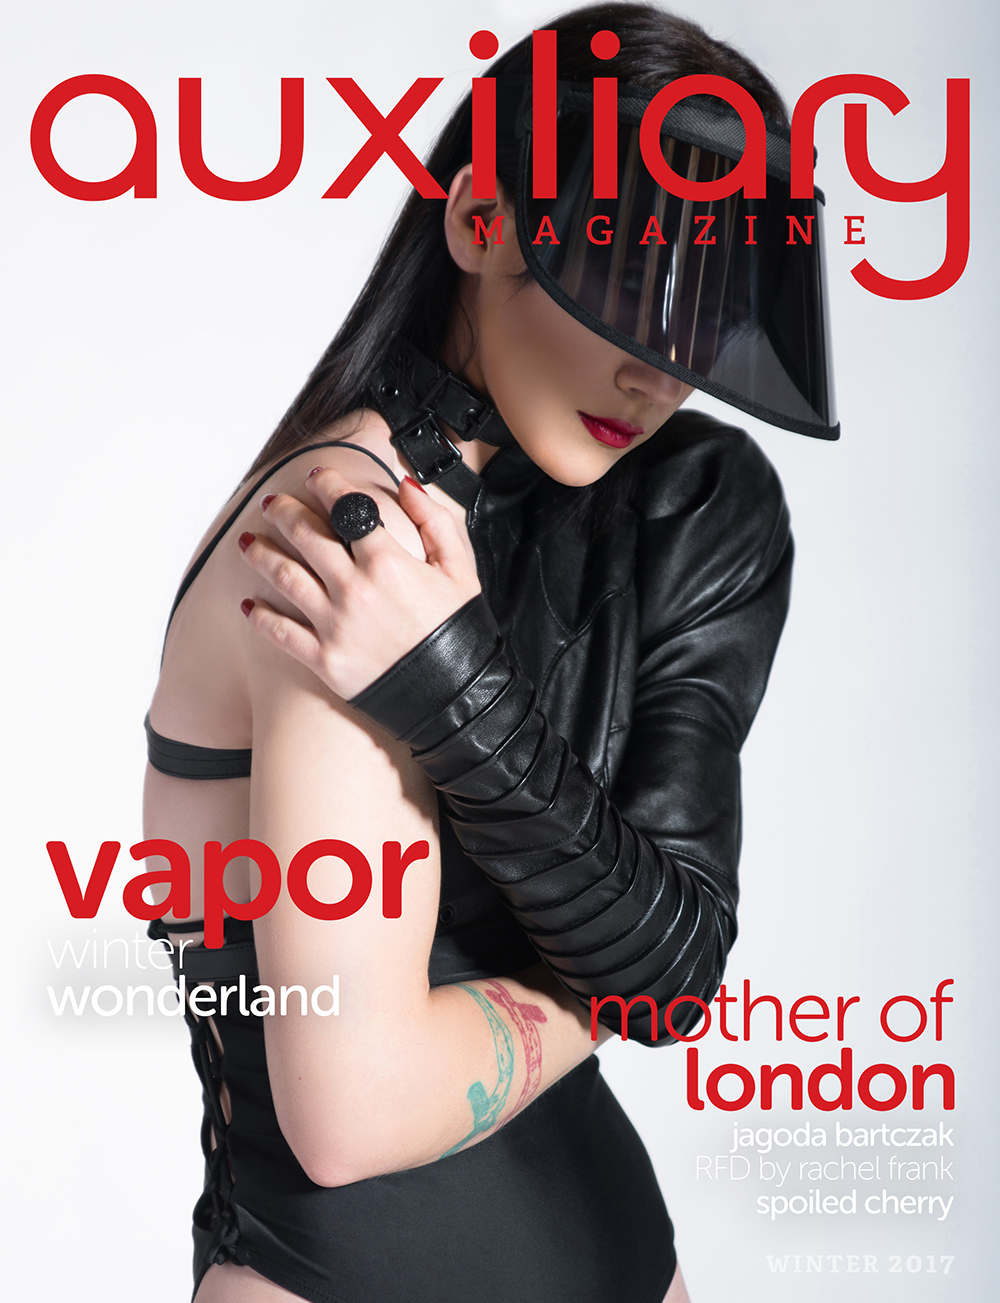 Auxiliary Magazine Winter 2017 Issue